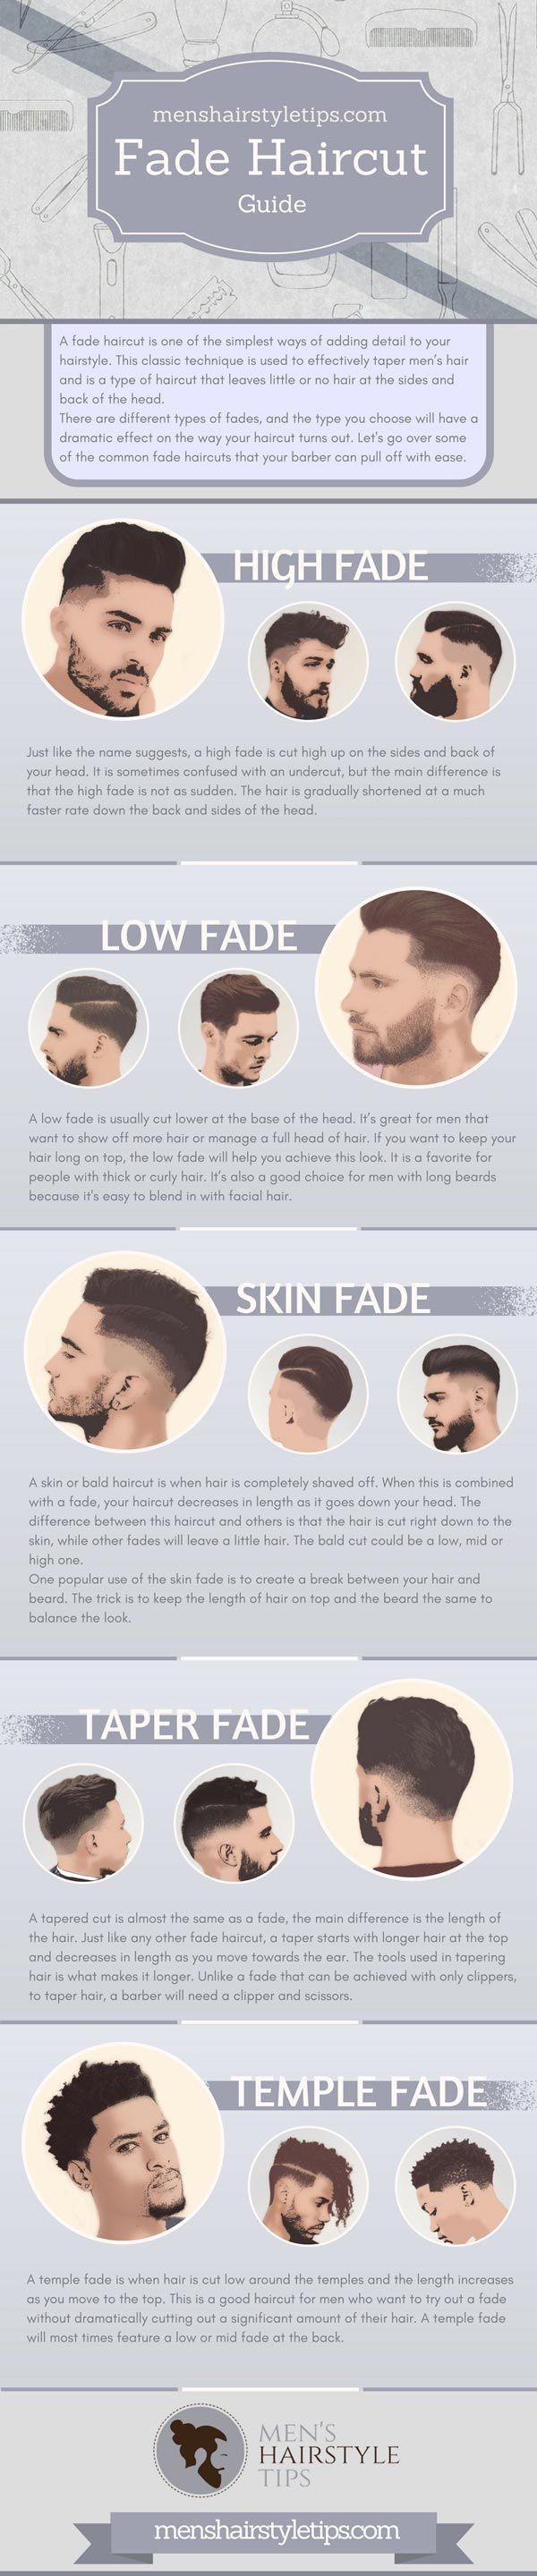 Fade Haircut Guide 5 Popular Types Of Fade Cut Men With Style